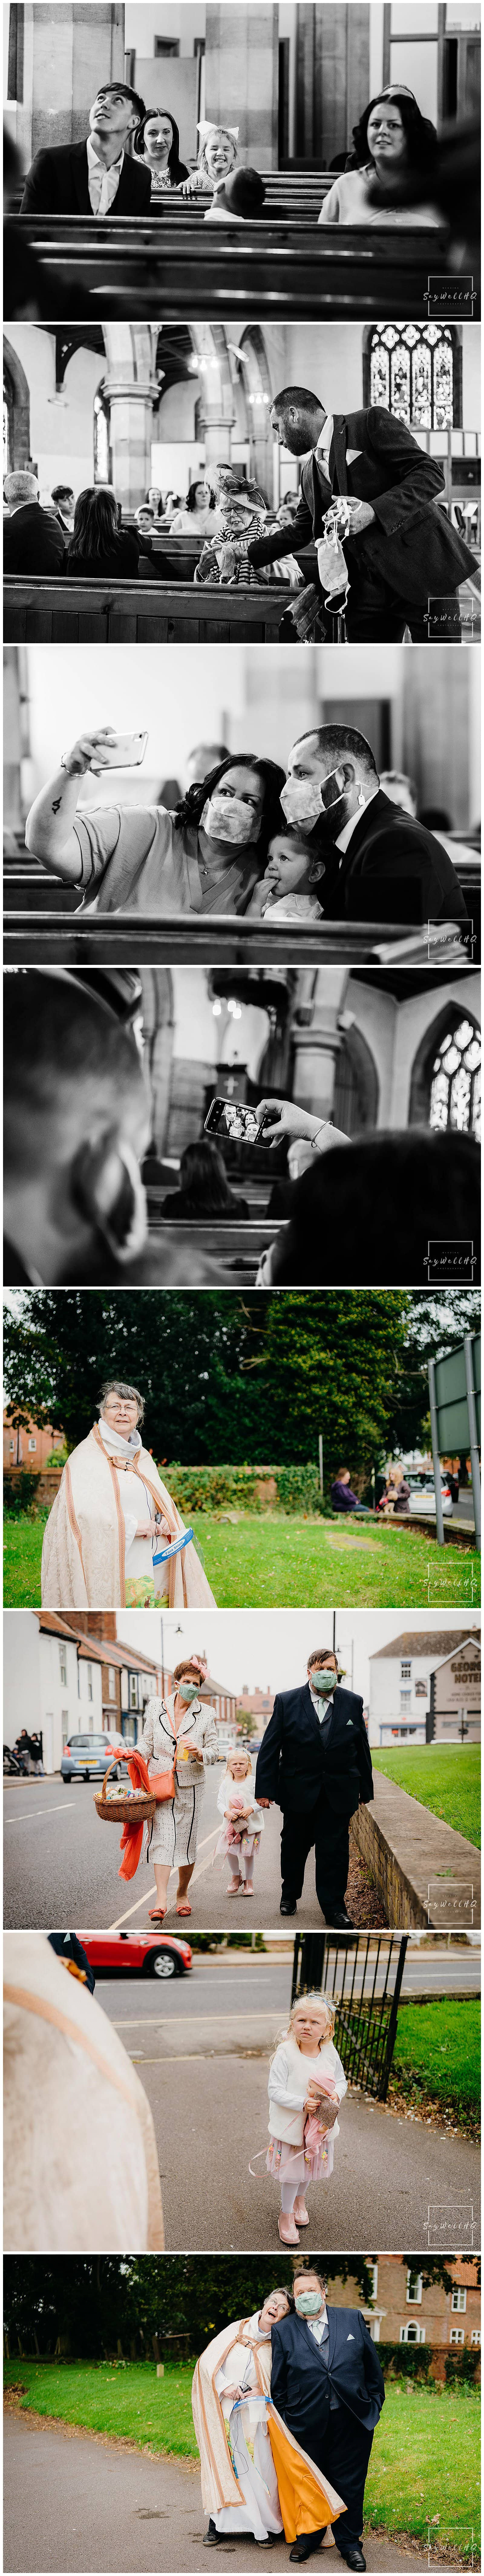 wedding guests arrive for the spilsby church wedding in Lincolnshire - by Wedding Photographer Andy Saywell of SaywellHQ